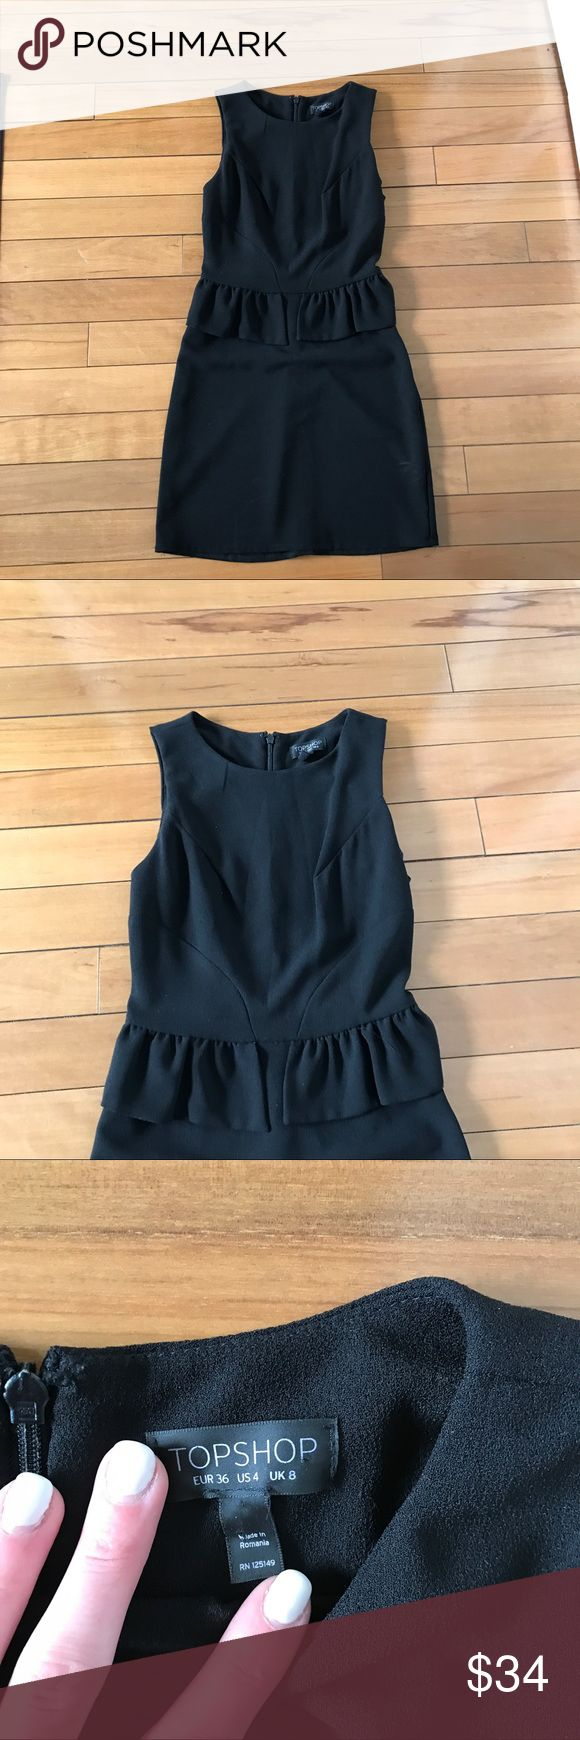 Topshop Black Peplum ruffle Dress Topshop black ruffle peplum Sleeveless mini dress. Size4! 33 inches from shoulder to hem. Zips up in back. Excellent used condition! Topshop Dresses Mini